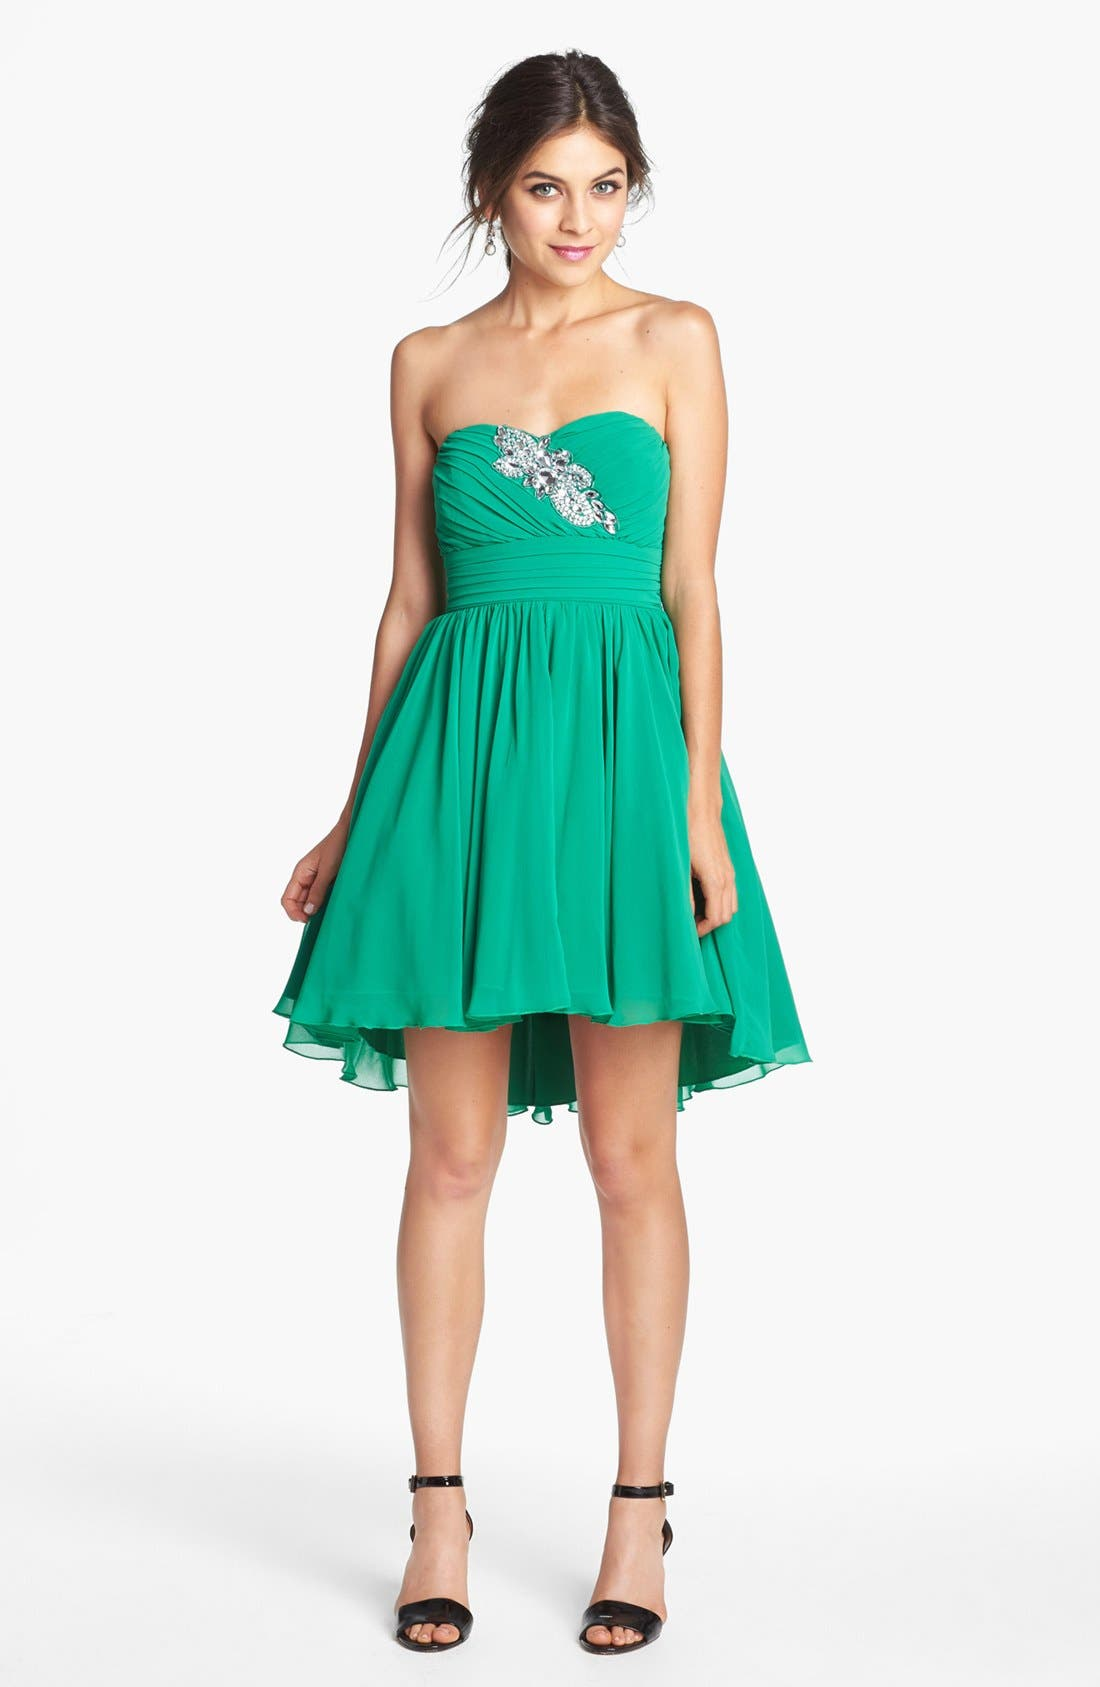 WAY-IN, Embellished Strapless Fit & Flare Dress, Main thumbnail 1, color, 301